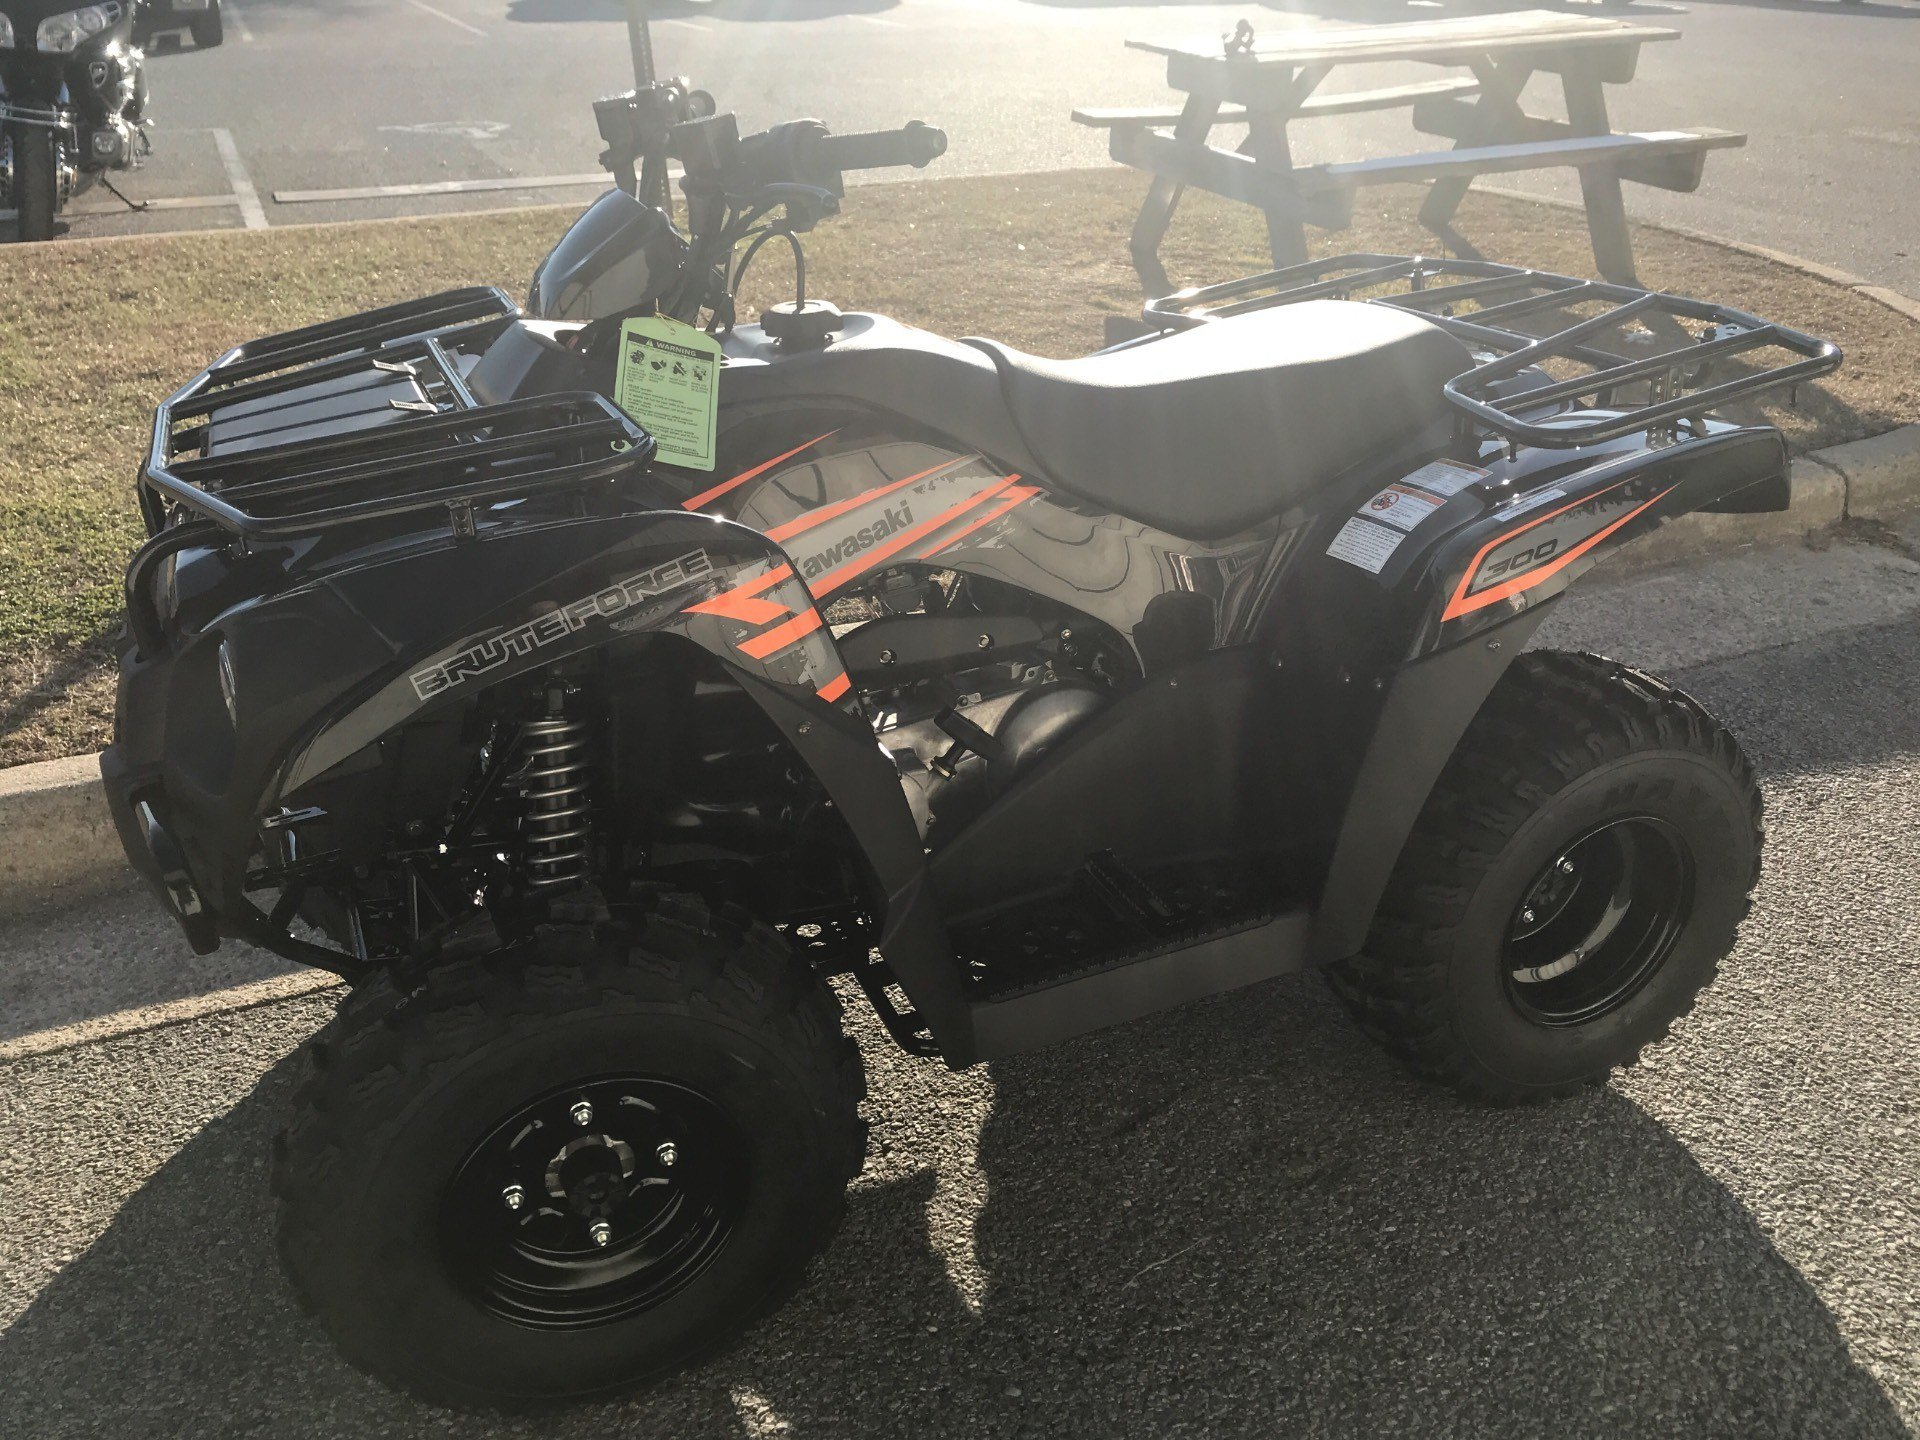 2018 Kawasaki Brute Force 300 in Greenville, North Carolina - Photo 11